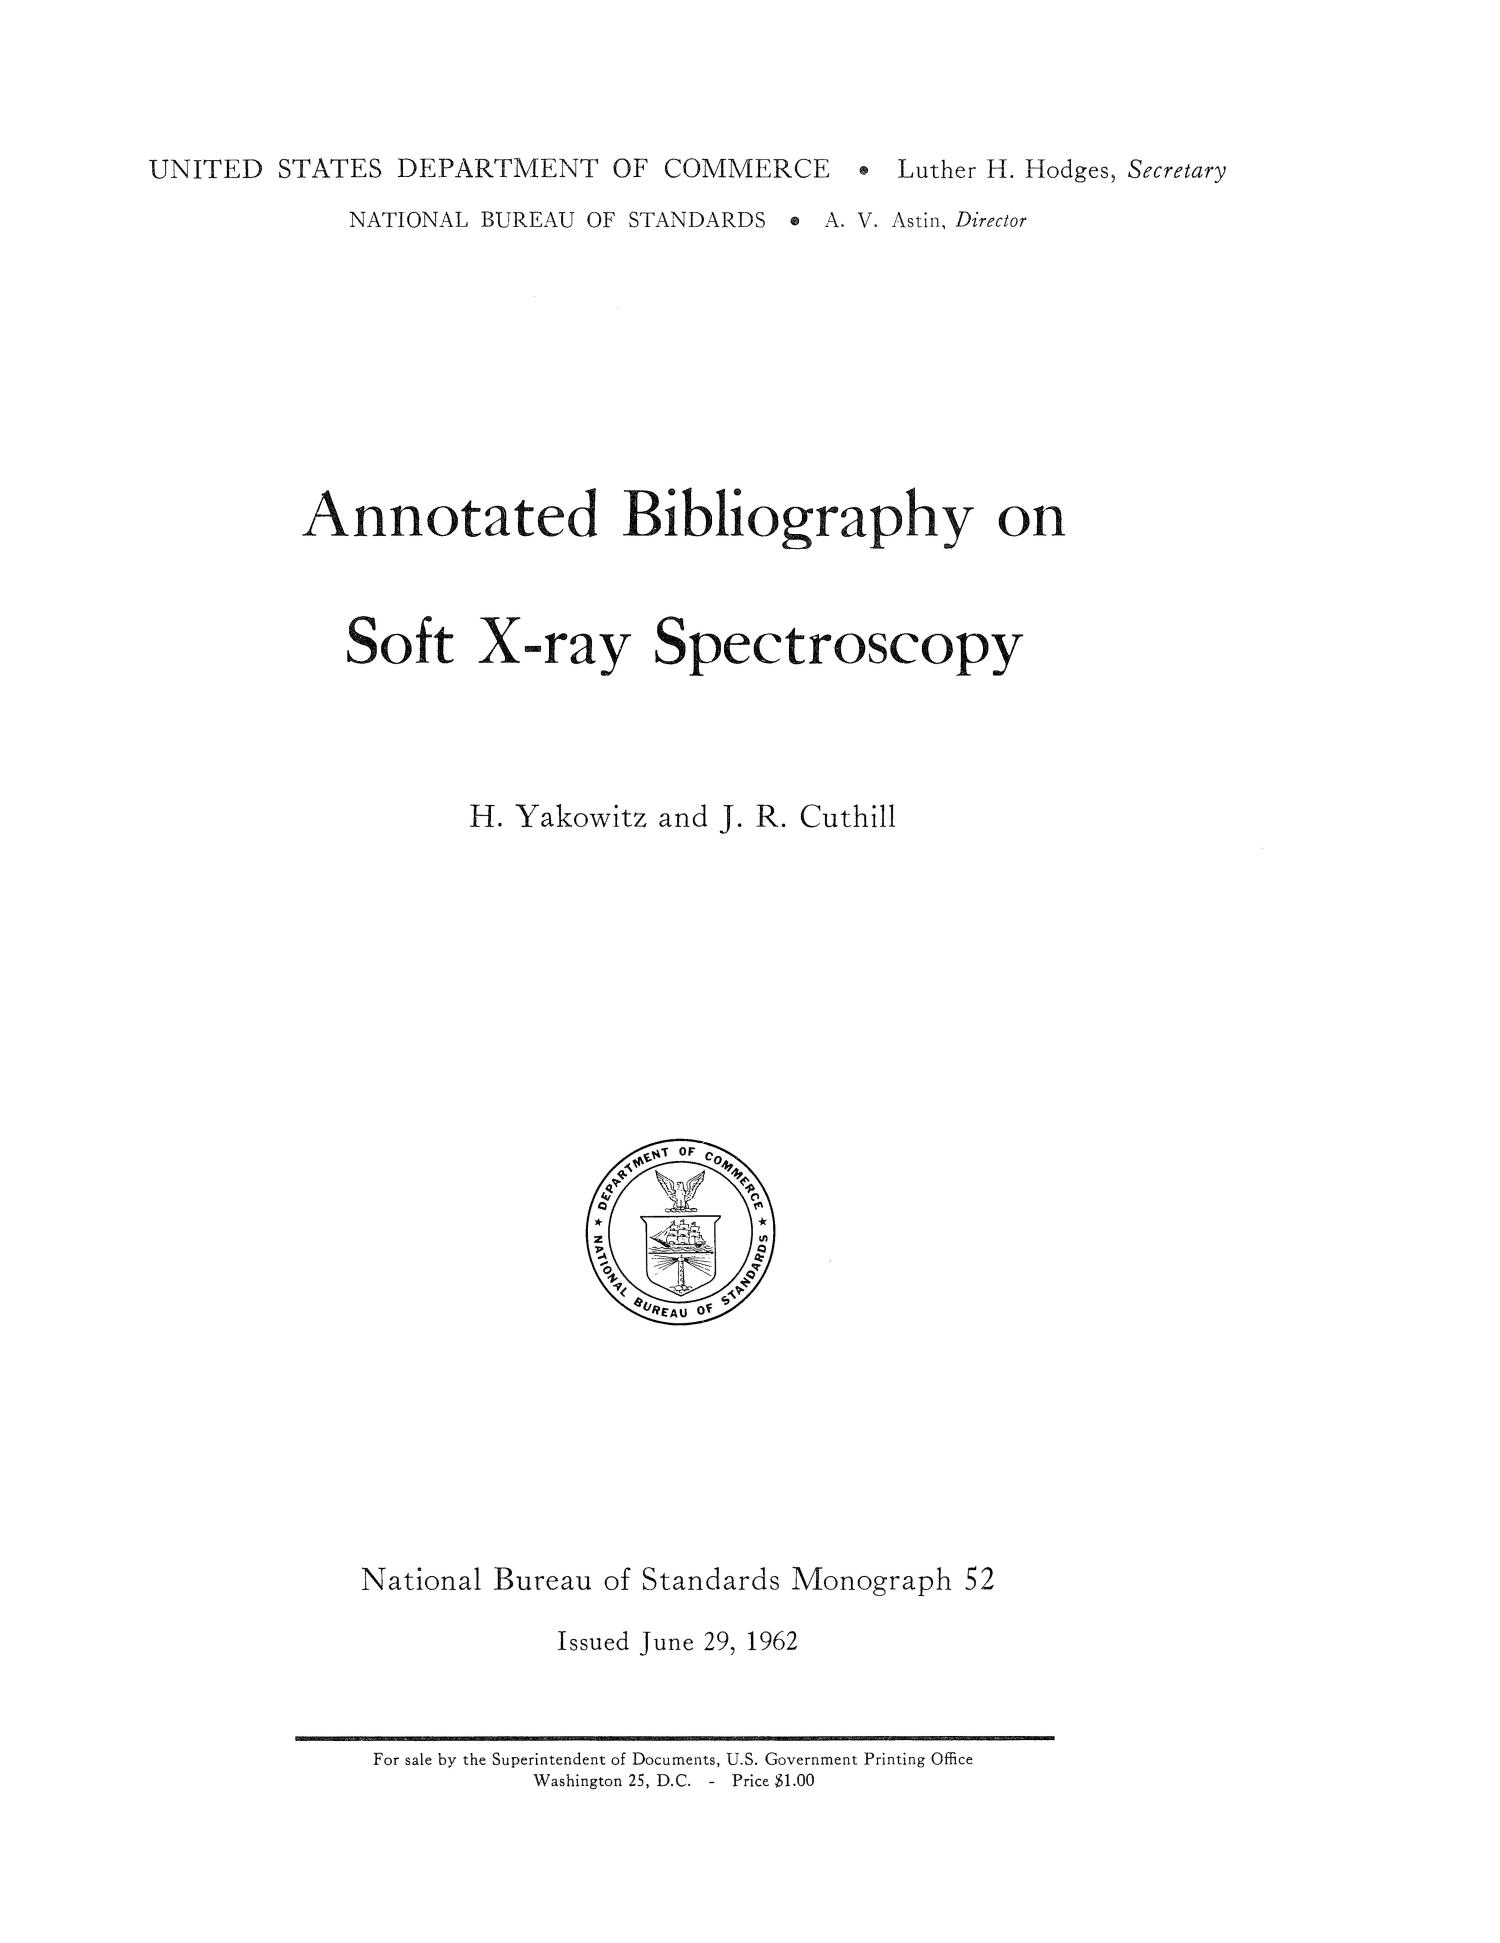 annotated bibliography on soft x-ray spectroscopy